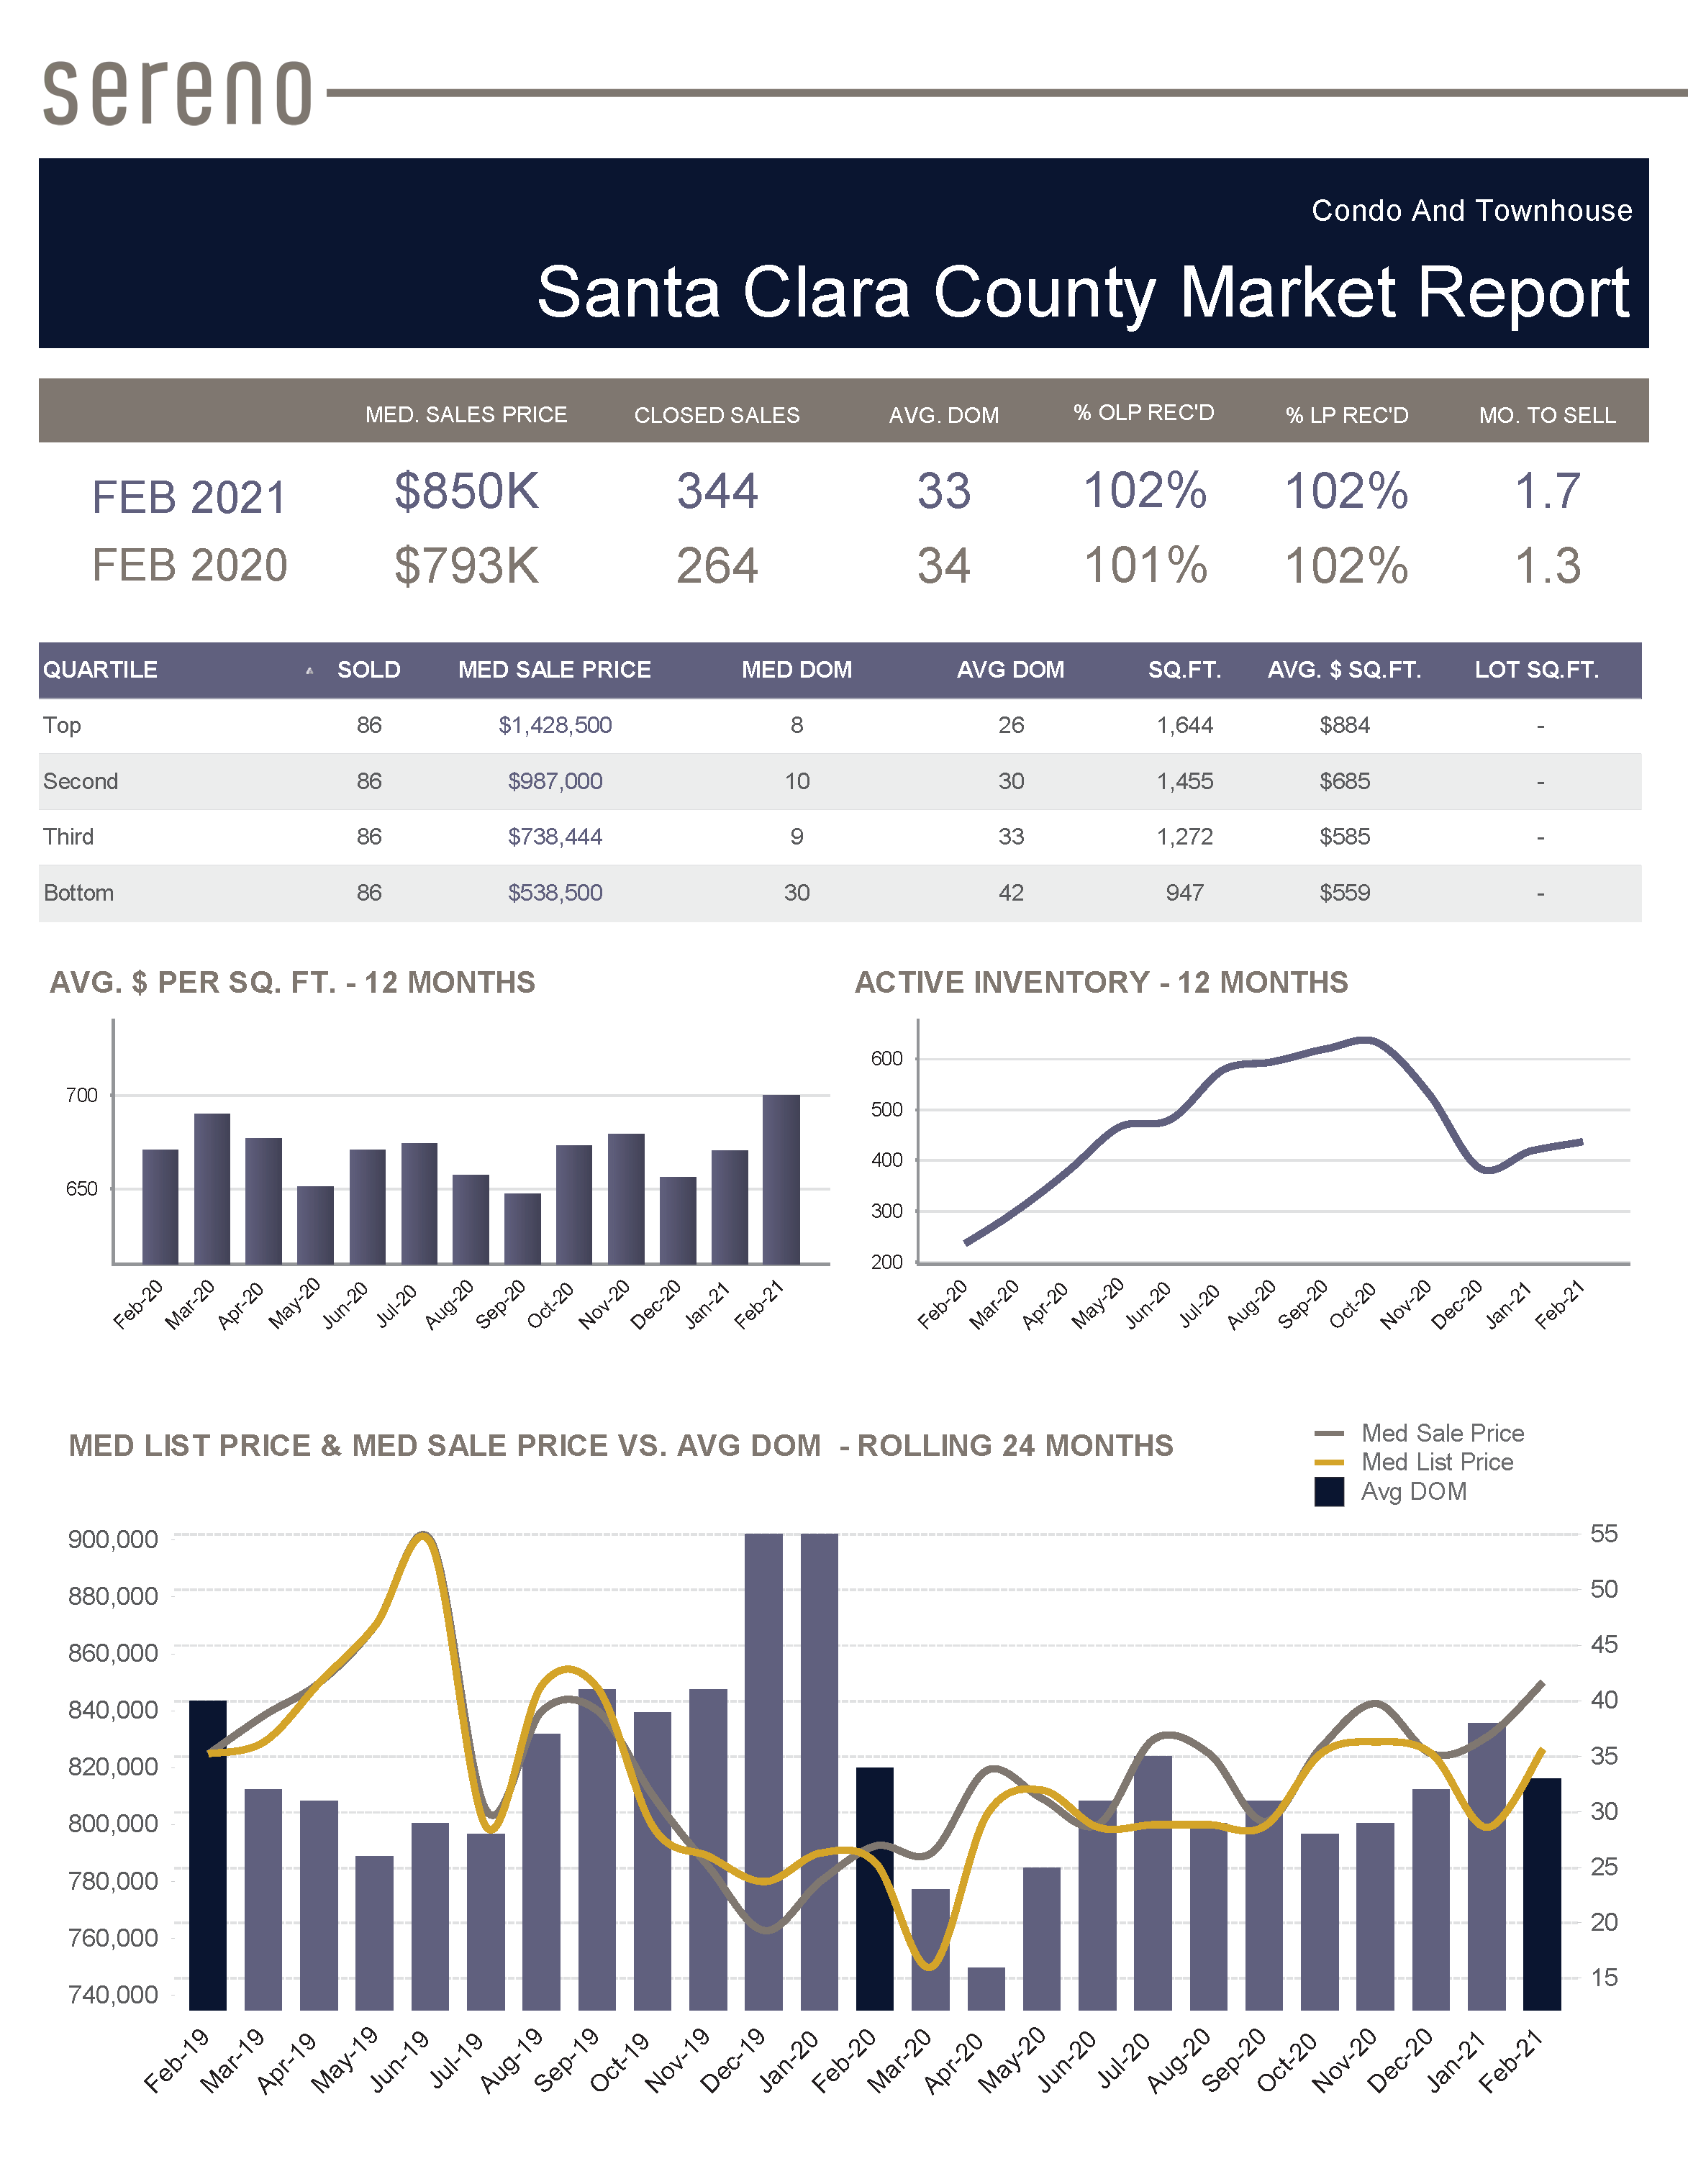 Feb 2021 – Condo _ Townhouse Market Report - Santa Clara